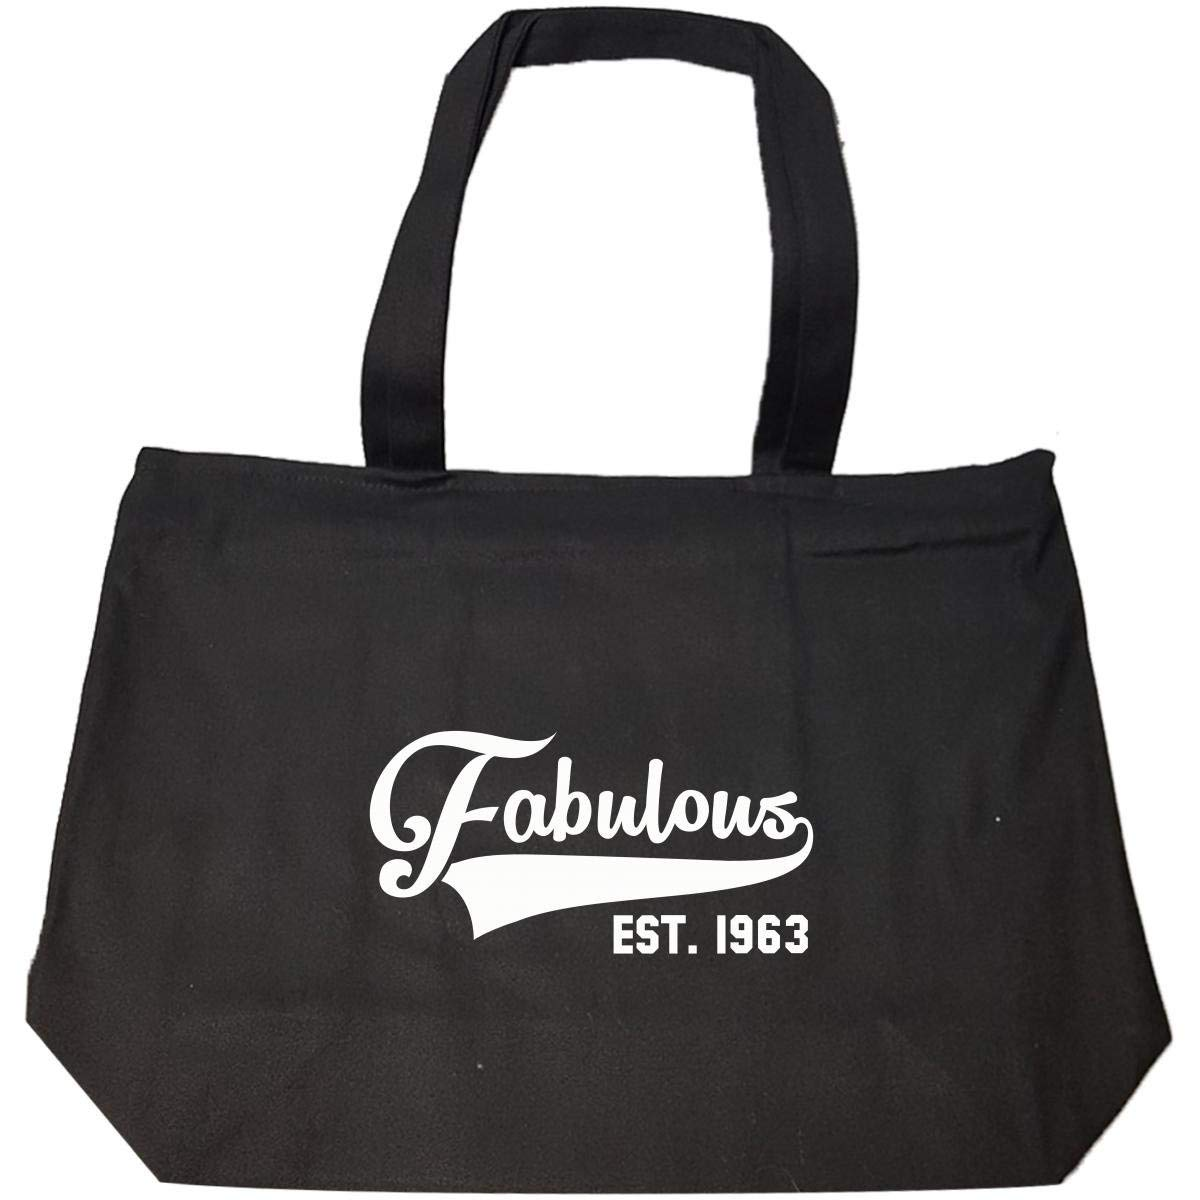 54th Birthday Gift Ideas For Her Woman Fabulous Est 1963